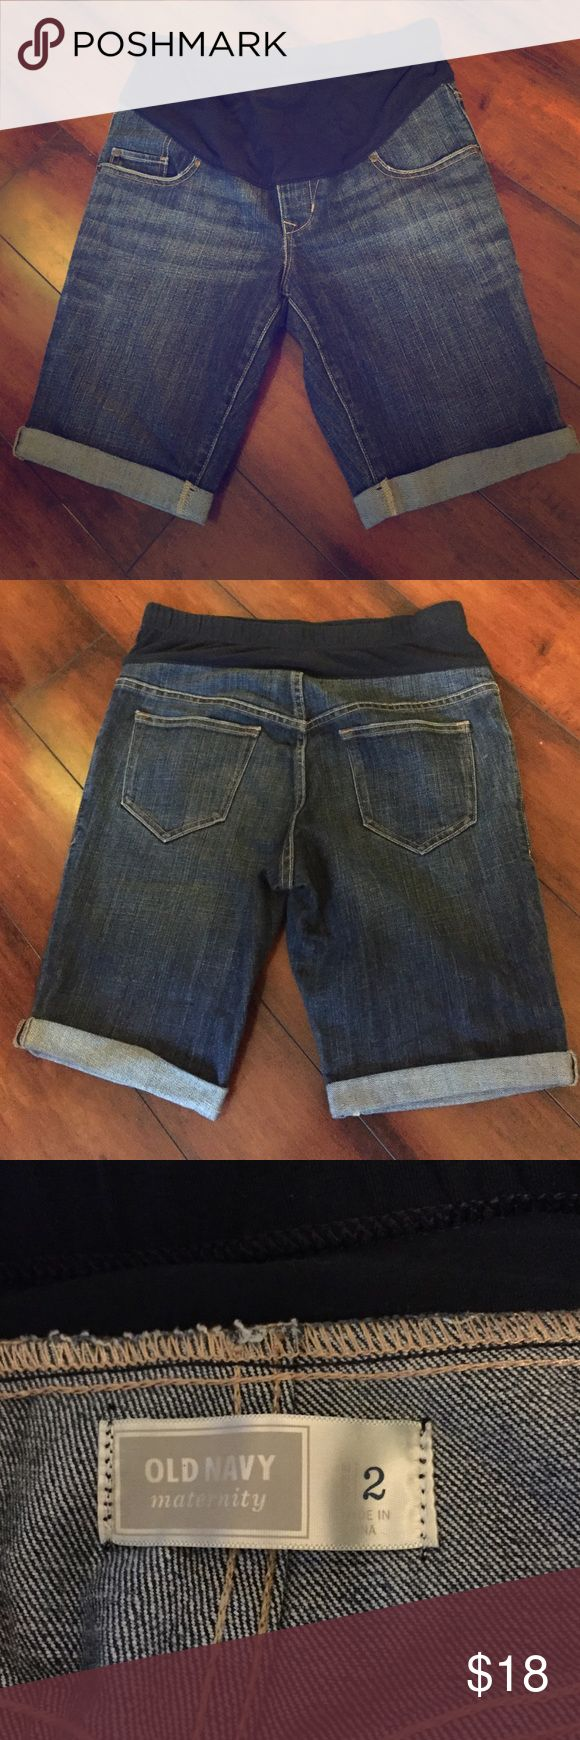 """Old Navy   Maternity Shorts Cute cuffed bottom shorts in medium wash. Like new, no damage. Very modest 9.5"""" inseam, so a Bermuda shorts length for some. Old Navy Shorts Jean Shorts"""